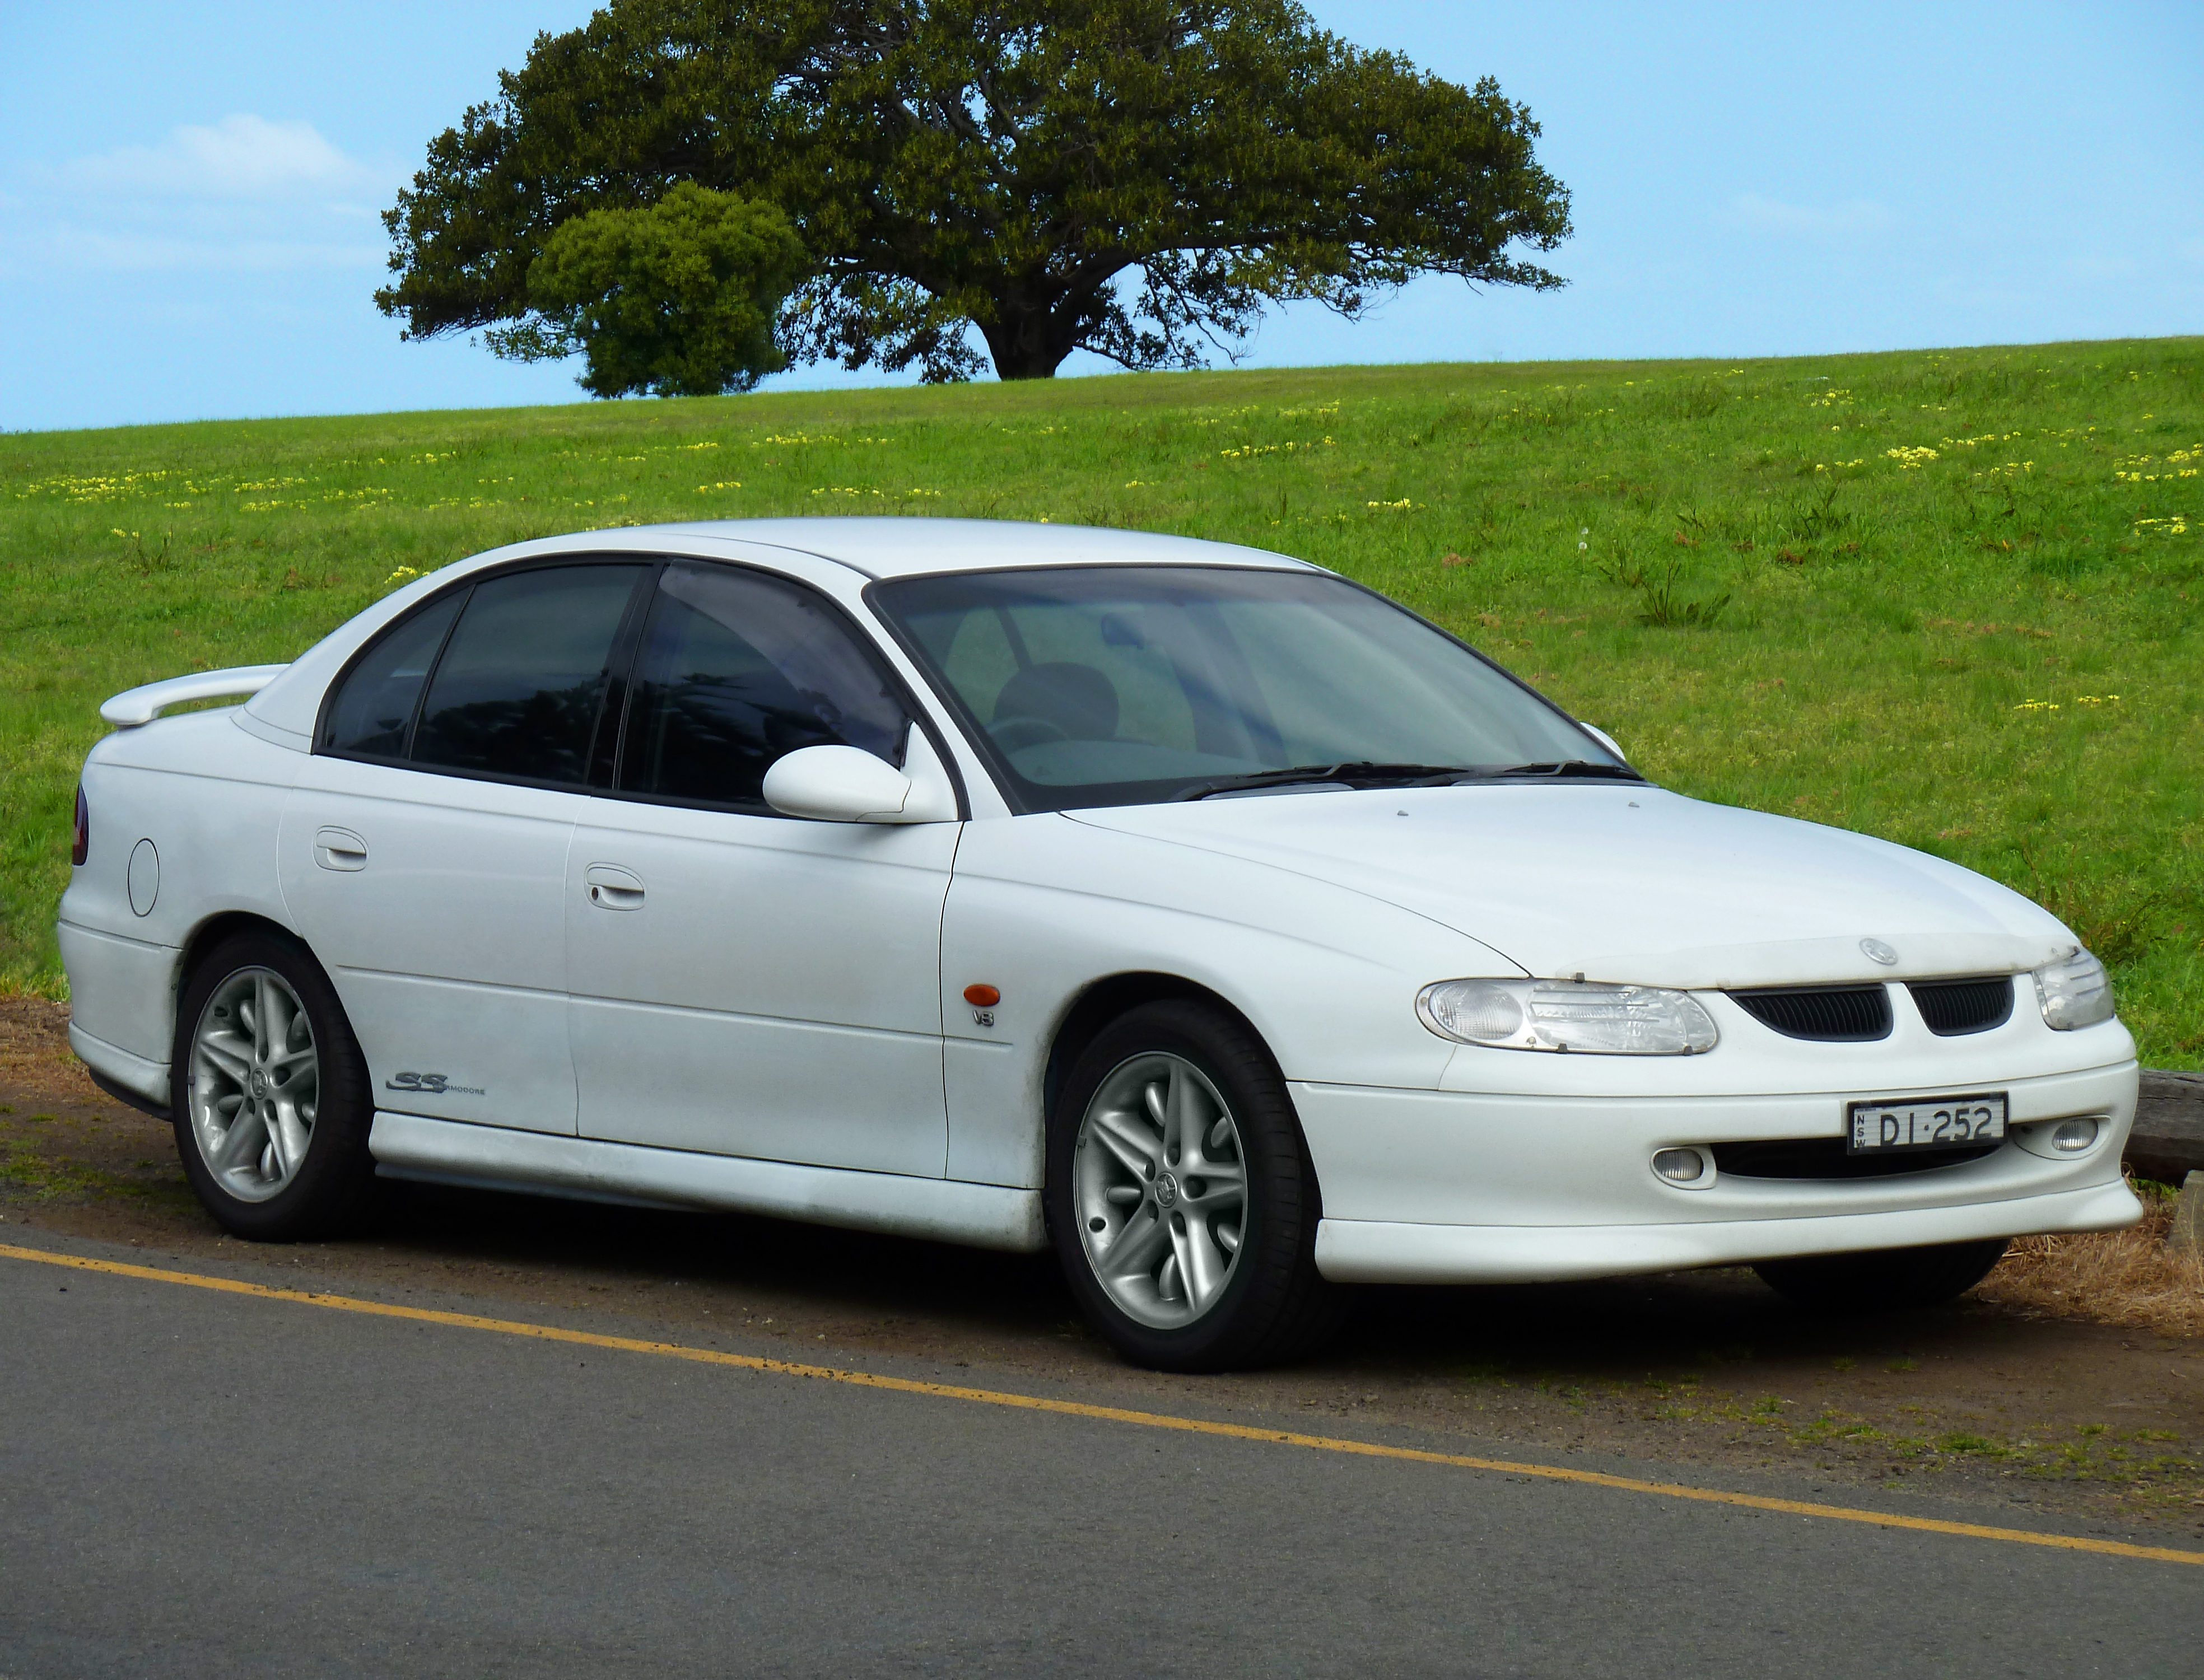 holden commodore (vt) 2010 models #3